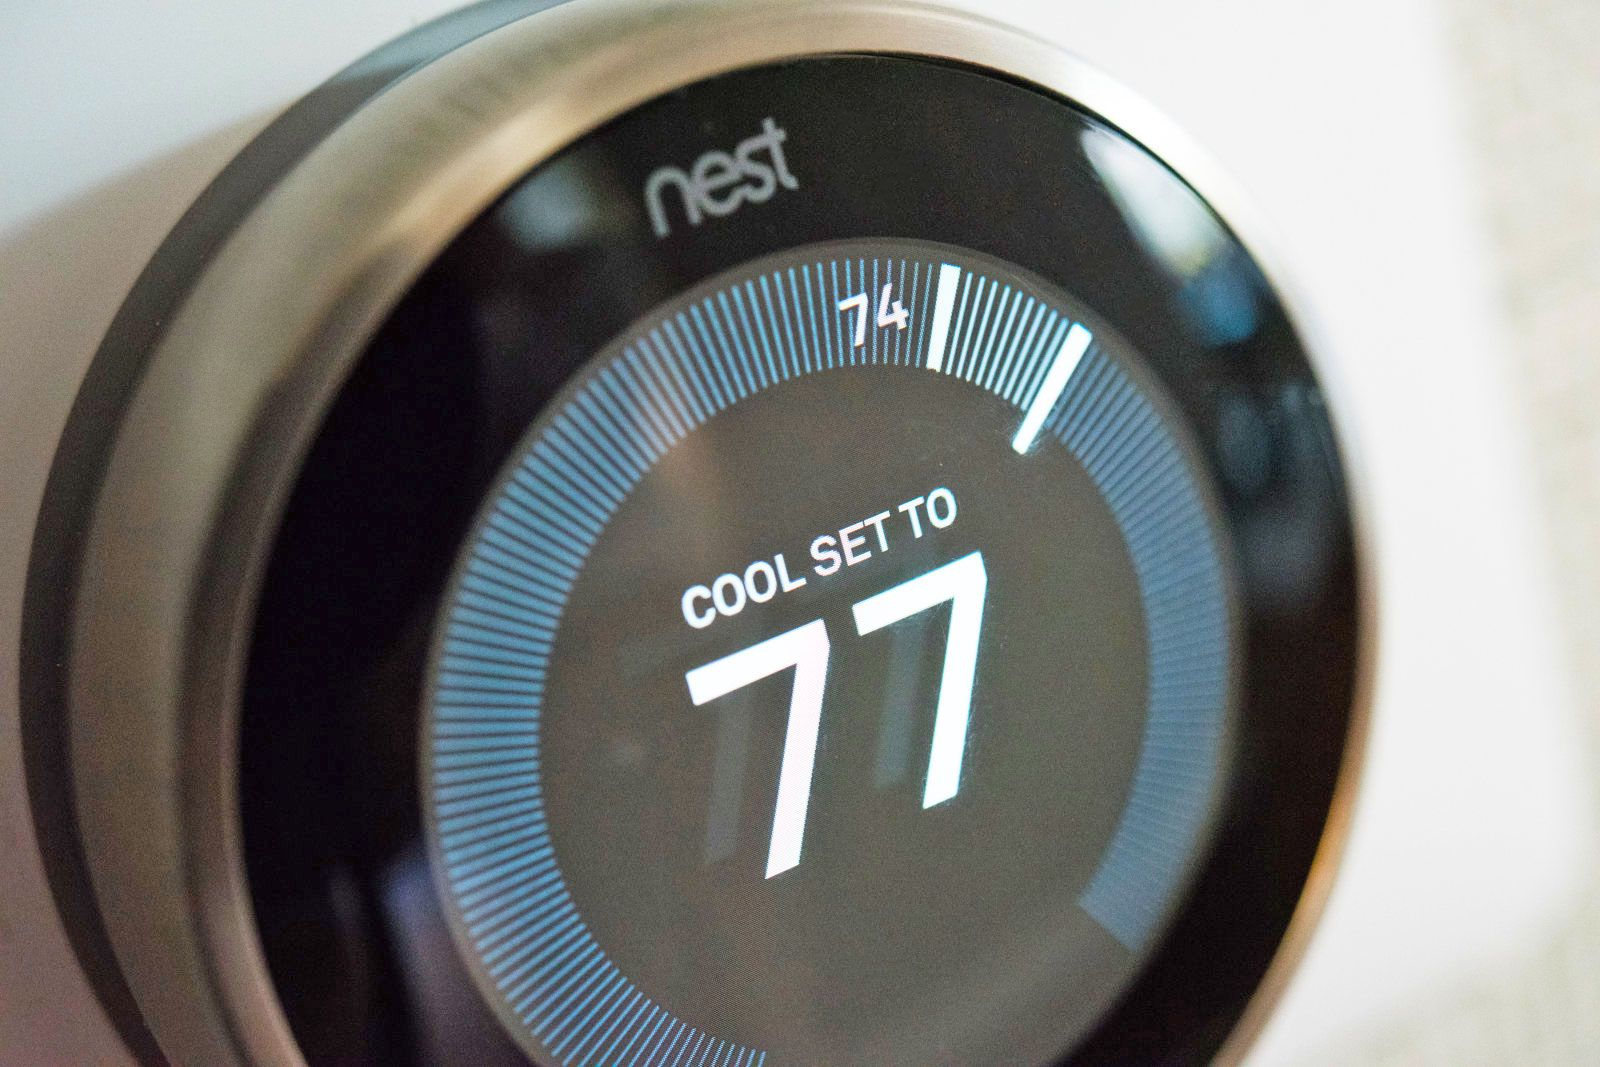 Nest said to be working on home security and a lowcost